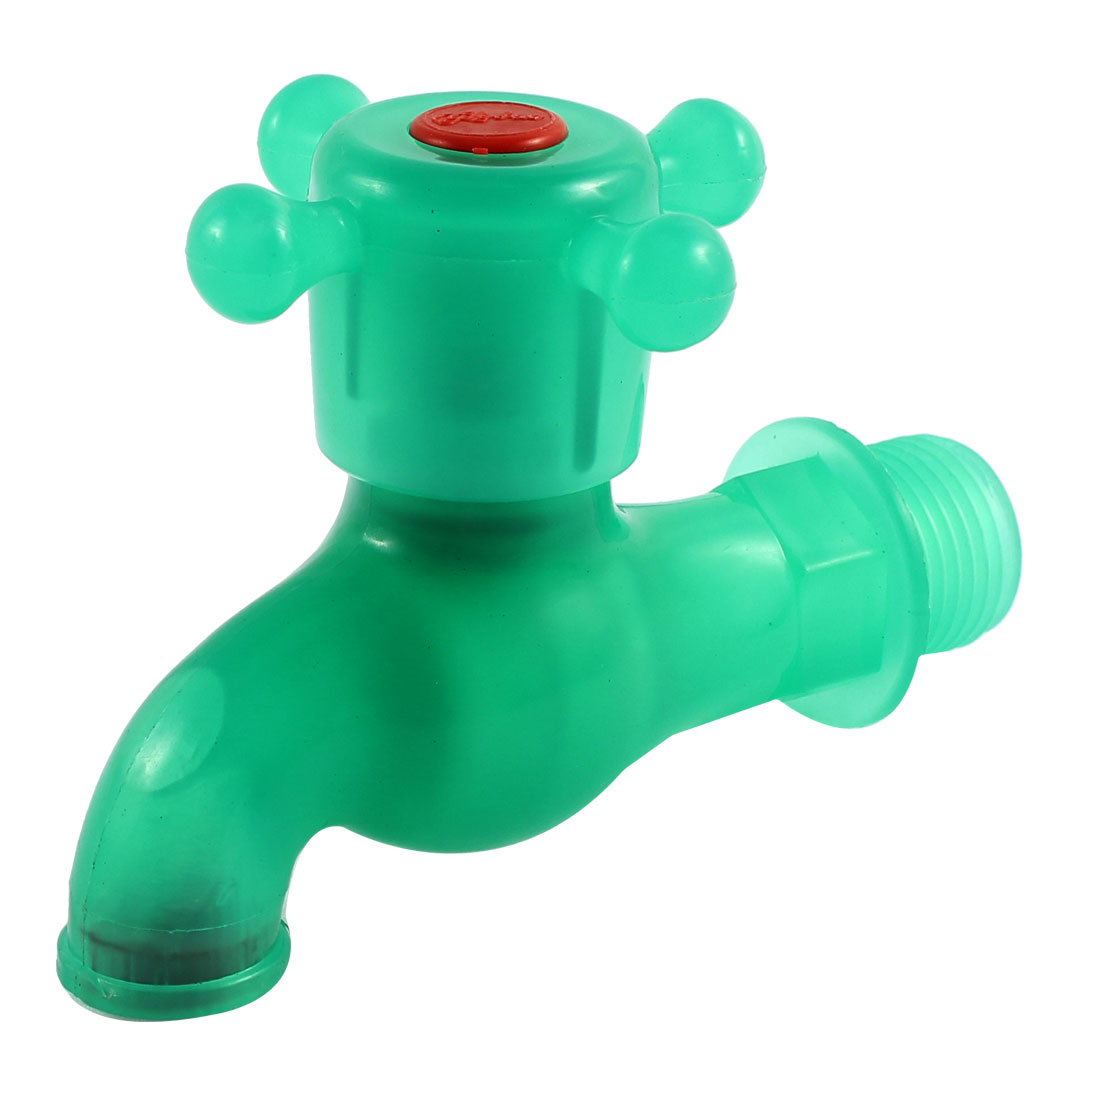 Plastic Kitchen Basin Sink 1/2 BSP Male Thread Dia Turn Handle Water Tap Faucet Green